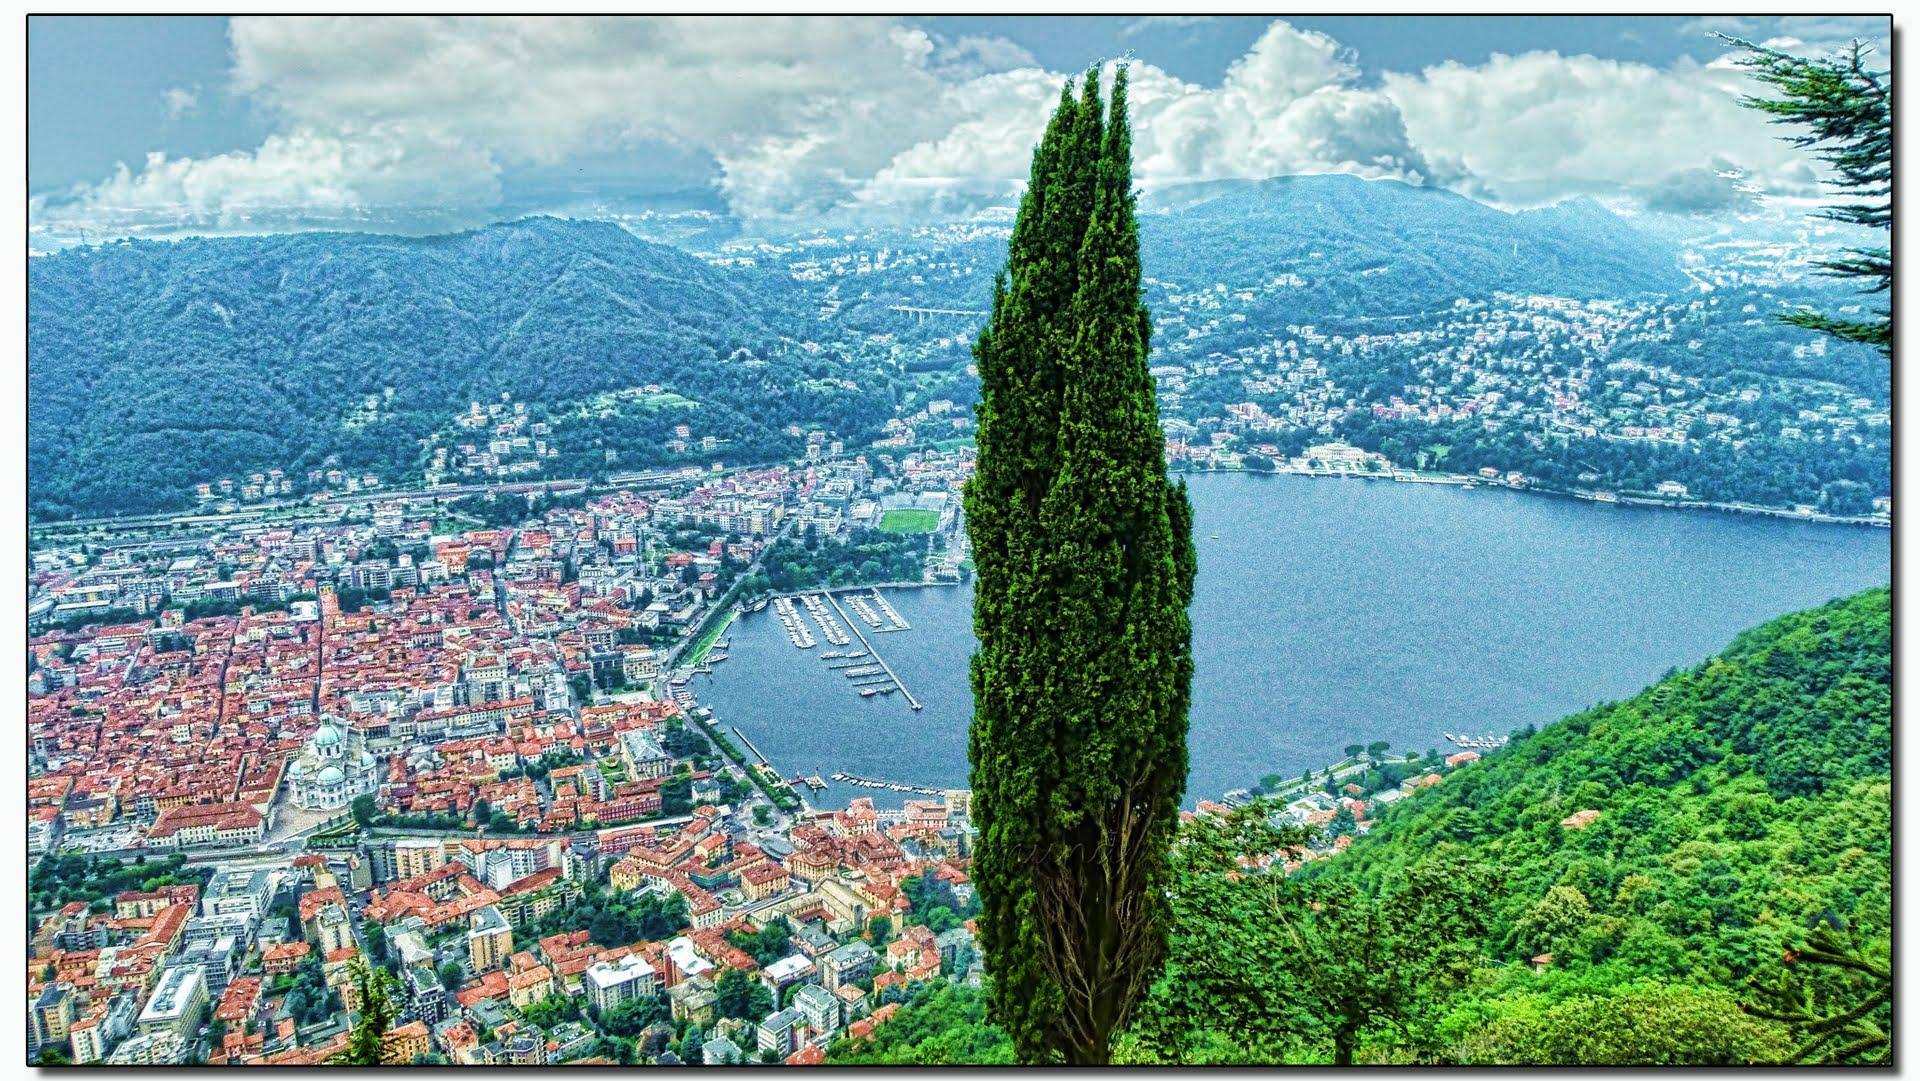 Lake Como High Resolution Wallpaper   Travel HD Wallpapers 1920x1081